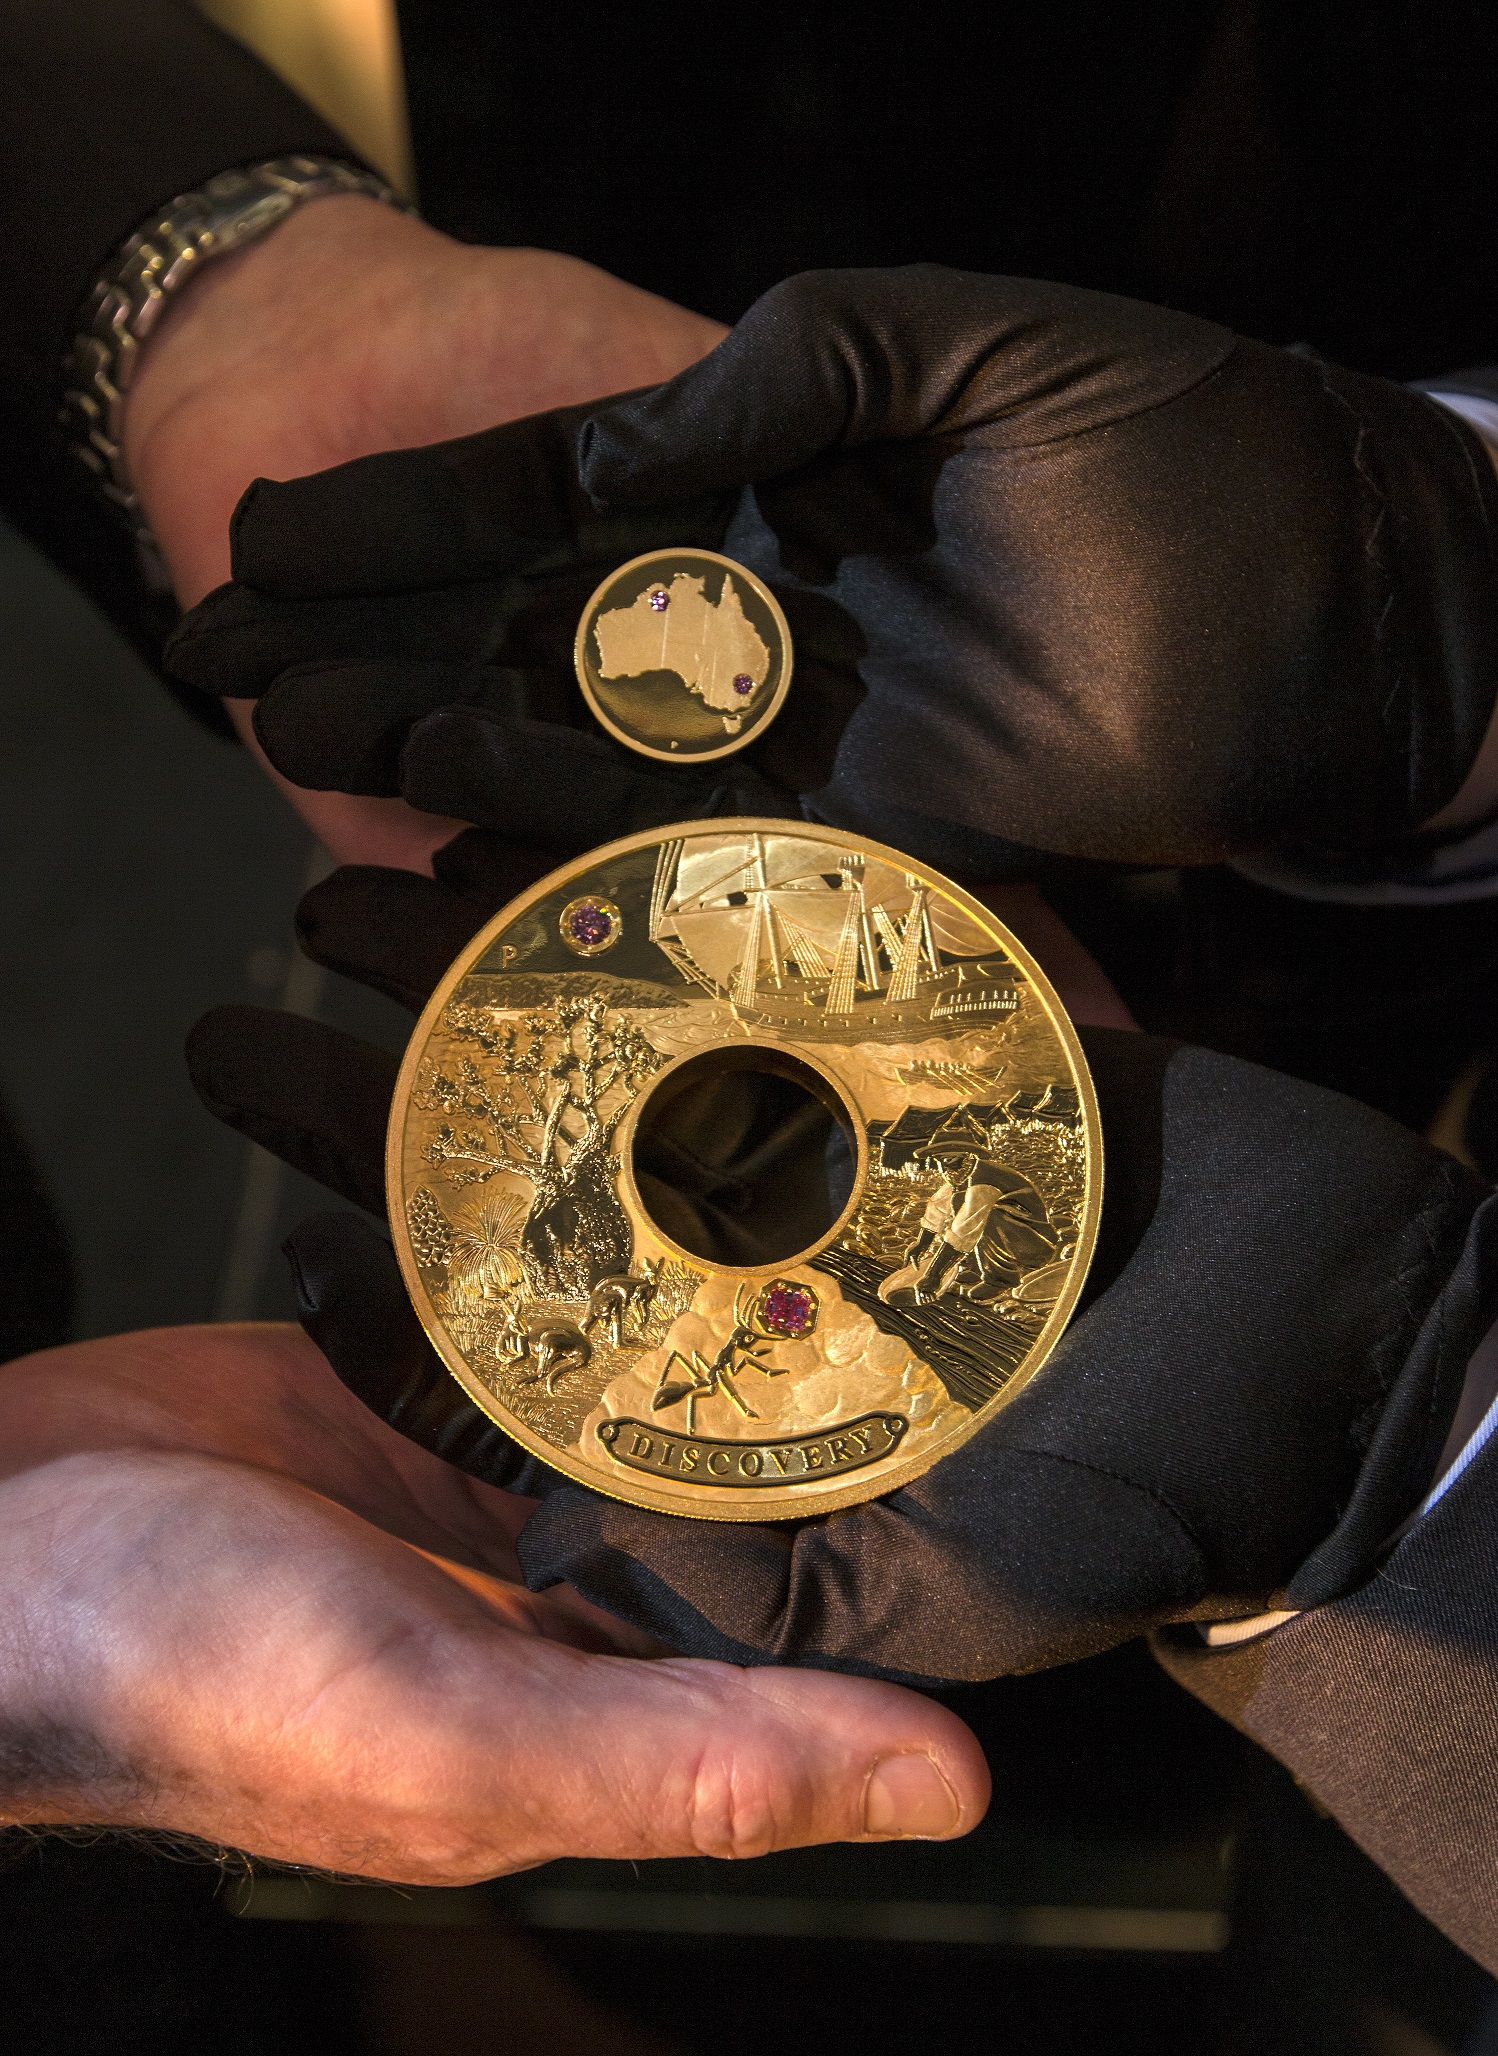 Australia's most valuable gold coin